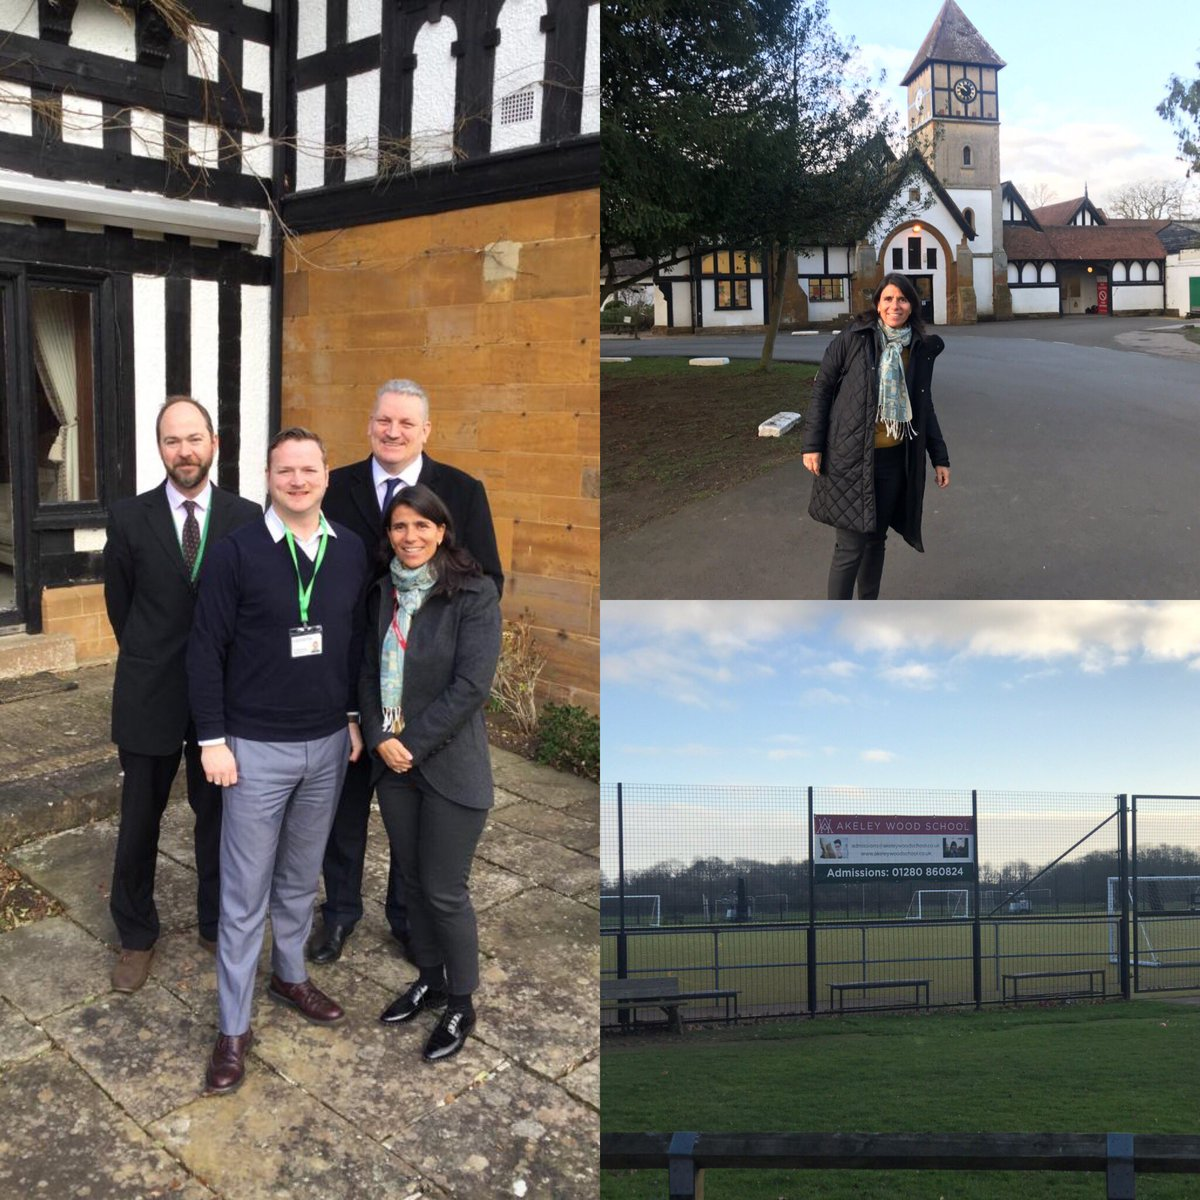 We have loved having you in the UK this week visiting @CognitaSchools - you are welcome here any time as Chile really isn't that far away! #CognitaWay